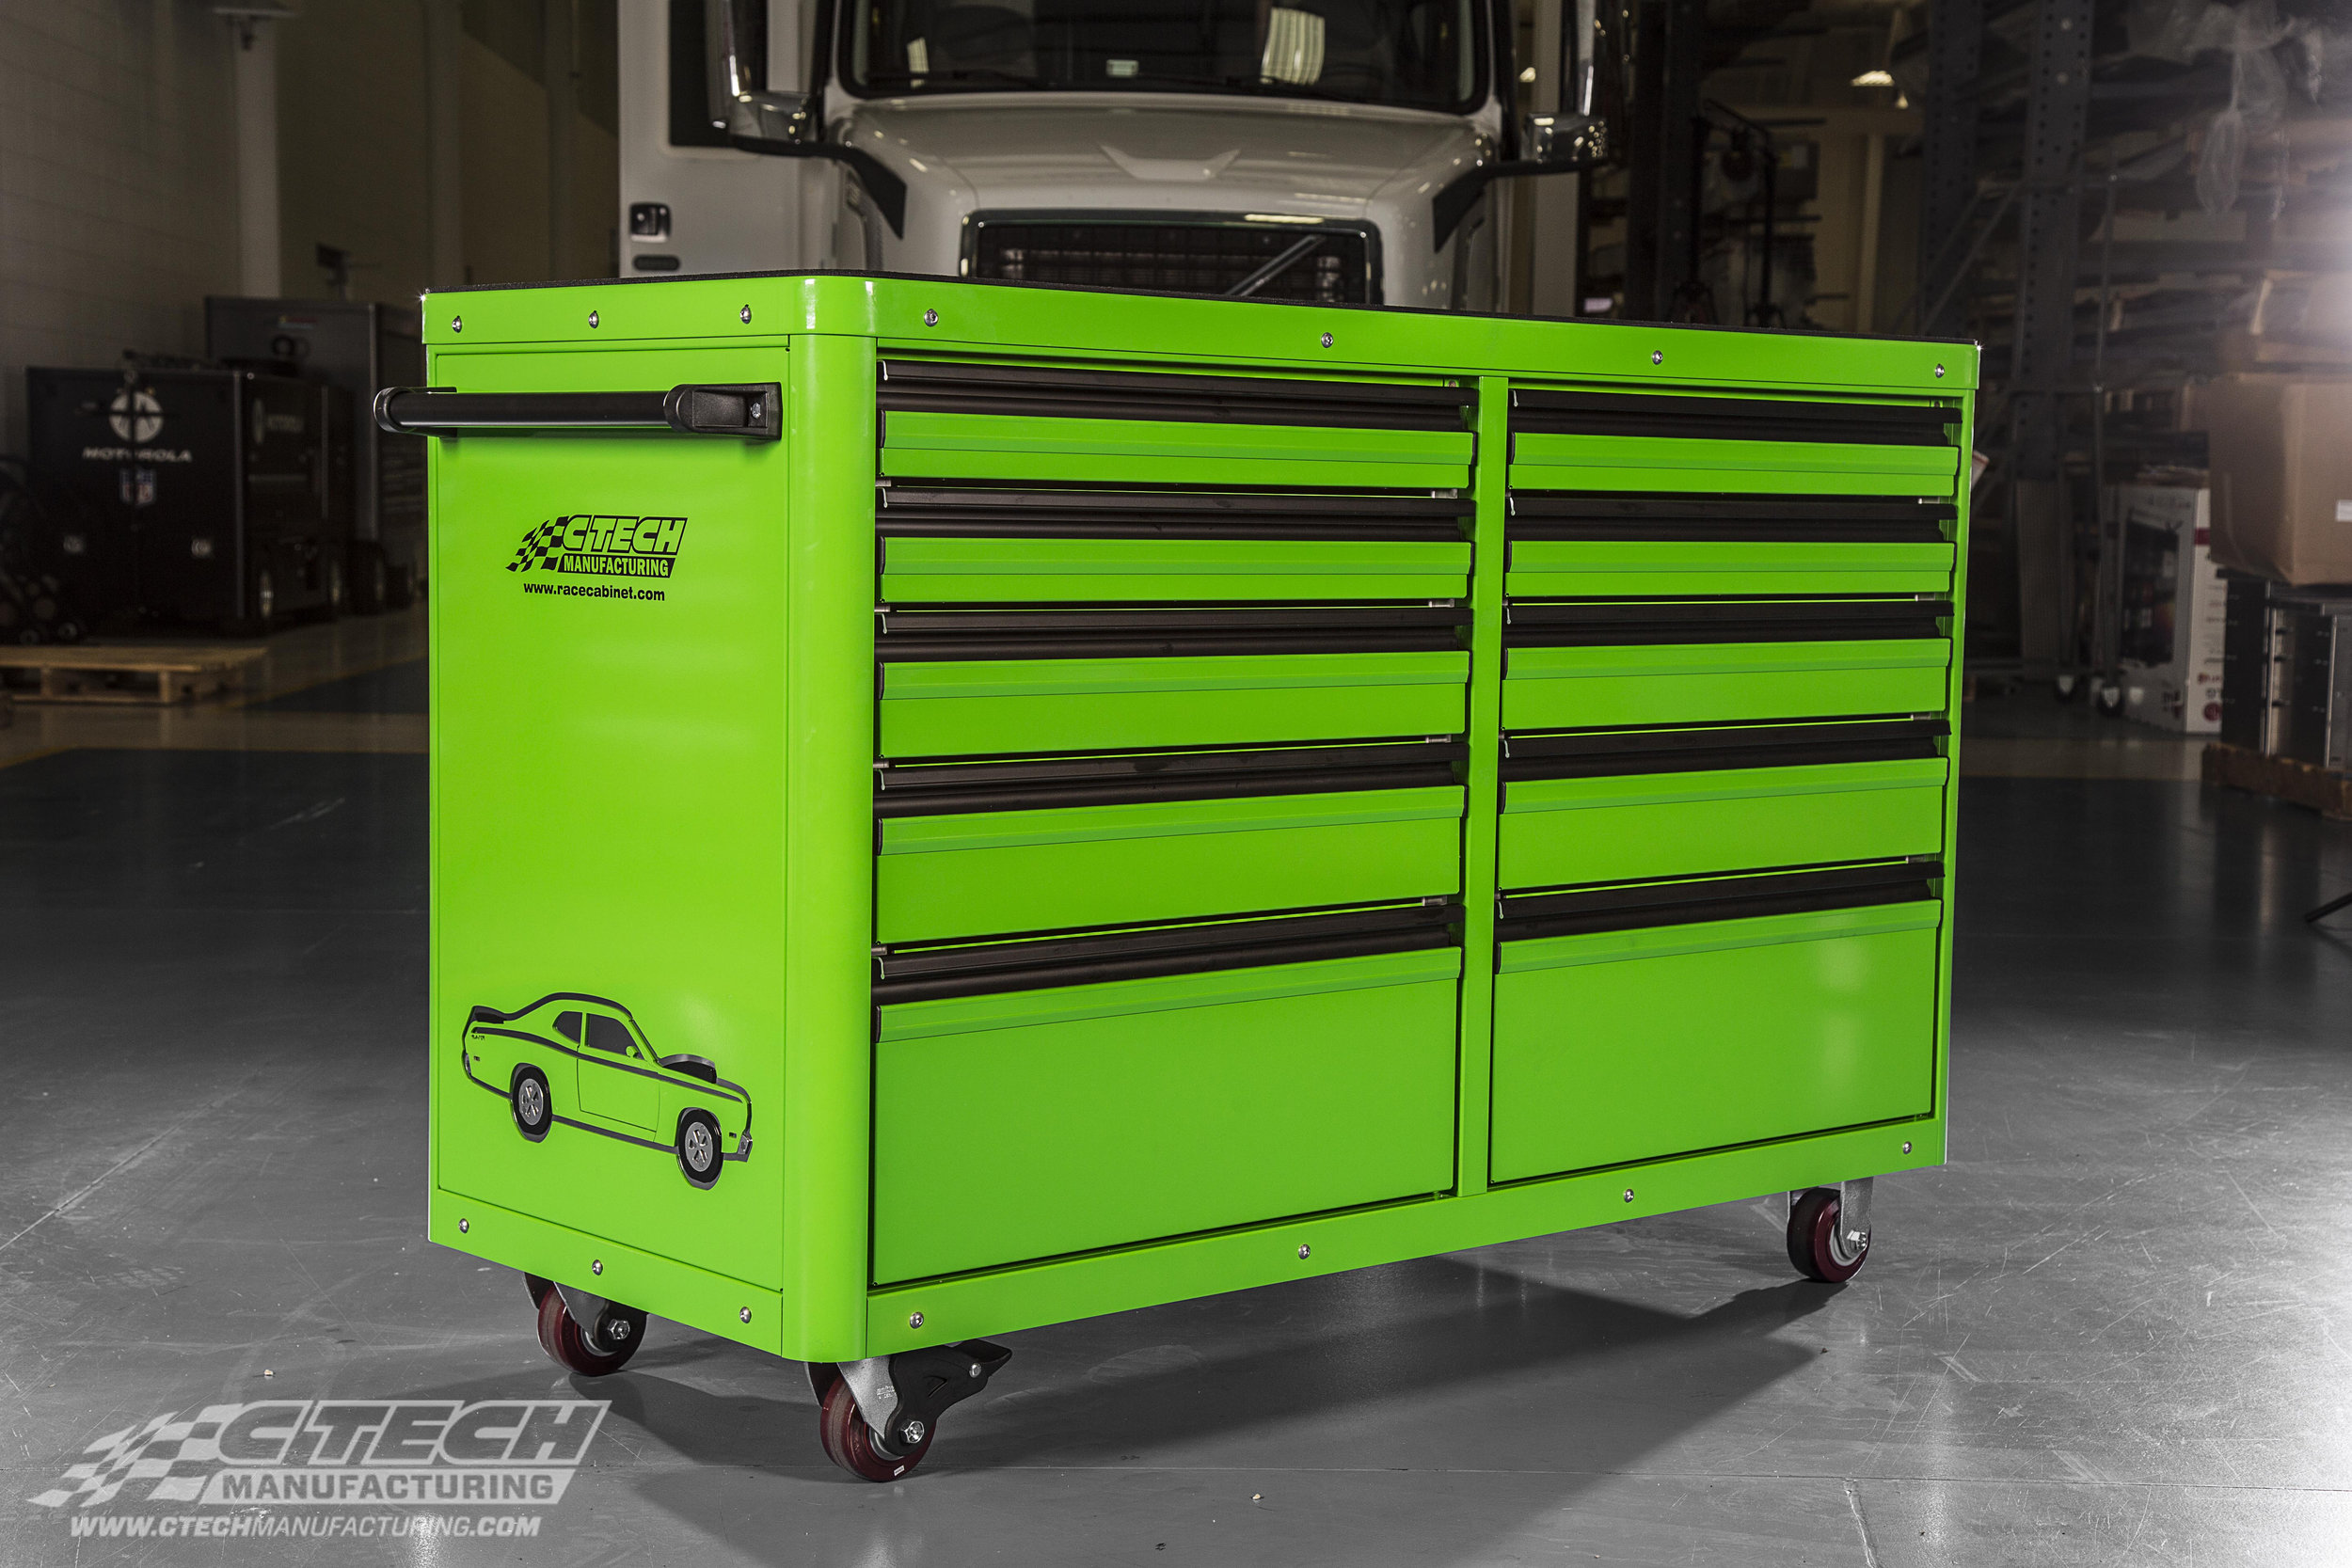 All CTECH products can be extensively customized;meaning your new toolbox can have everything from a custom paint job, to stickers,engraving, and much more. You have the power to choose whether or not your new unit stands out, or fits right in!